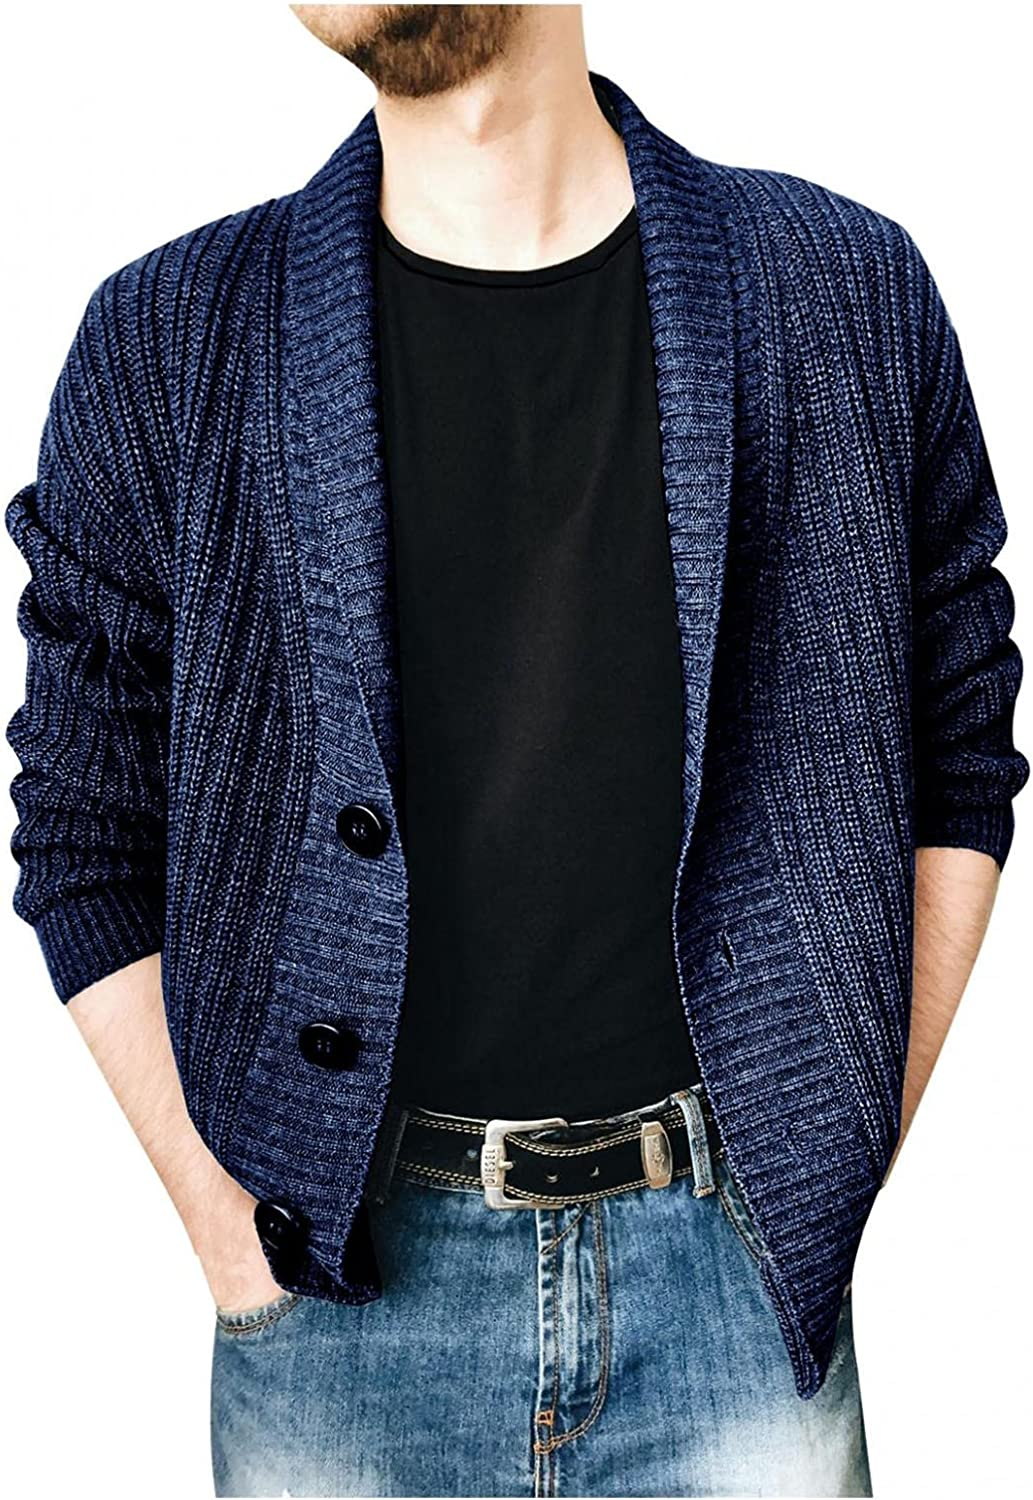 Men's Collar Cable Knitted Cardigan SweaterLightweight Long Sleeve Solid Color Lapel Single-Breasted Coat